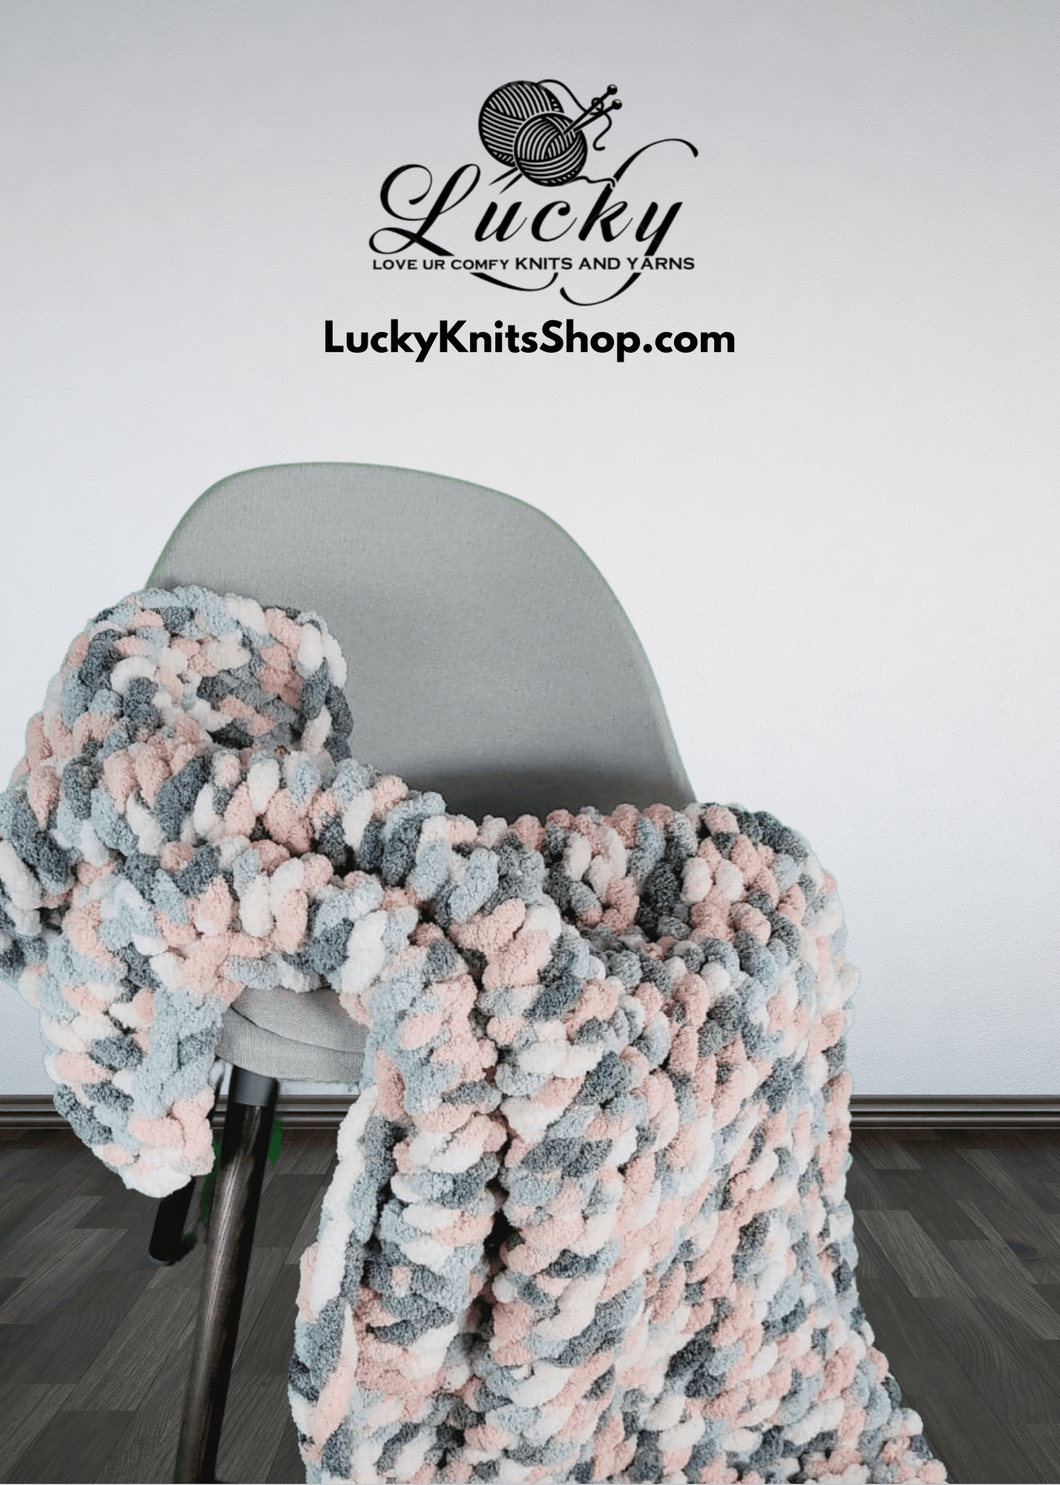 Silver Lining Throw/Blanket Blankets Luckyknitsshop Lapghan 36